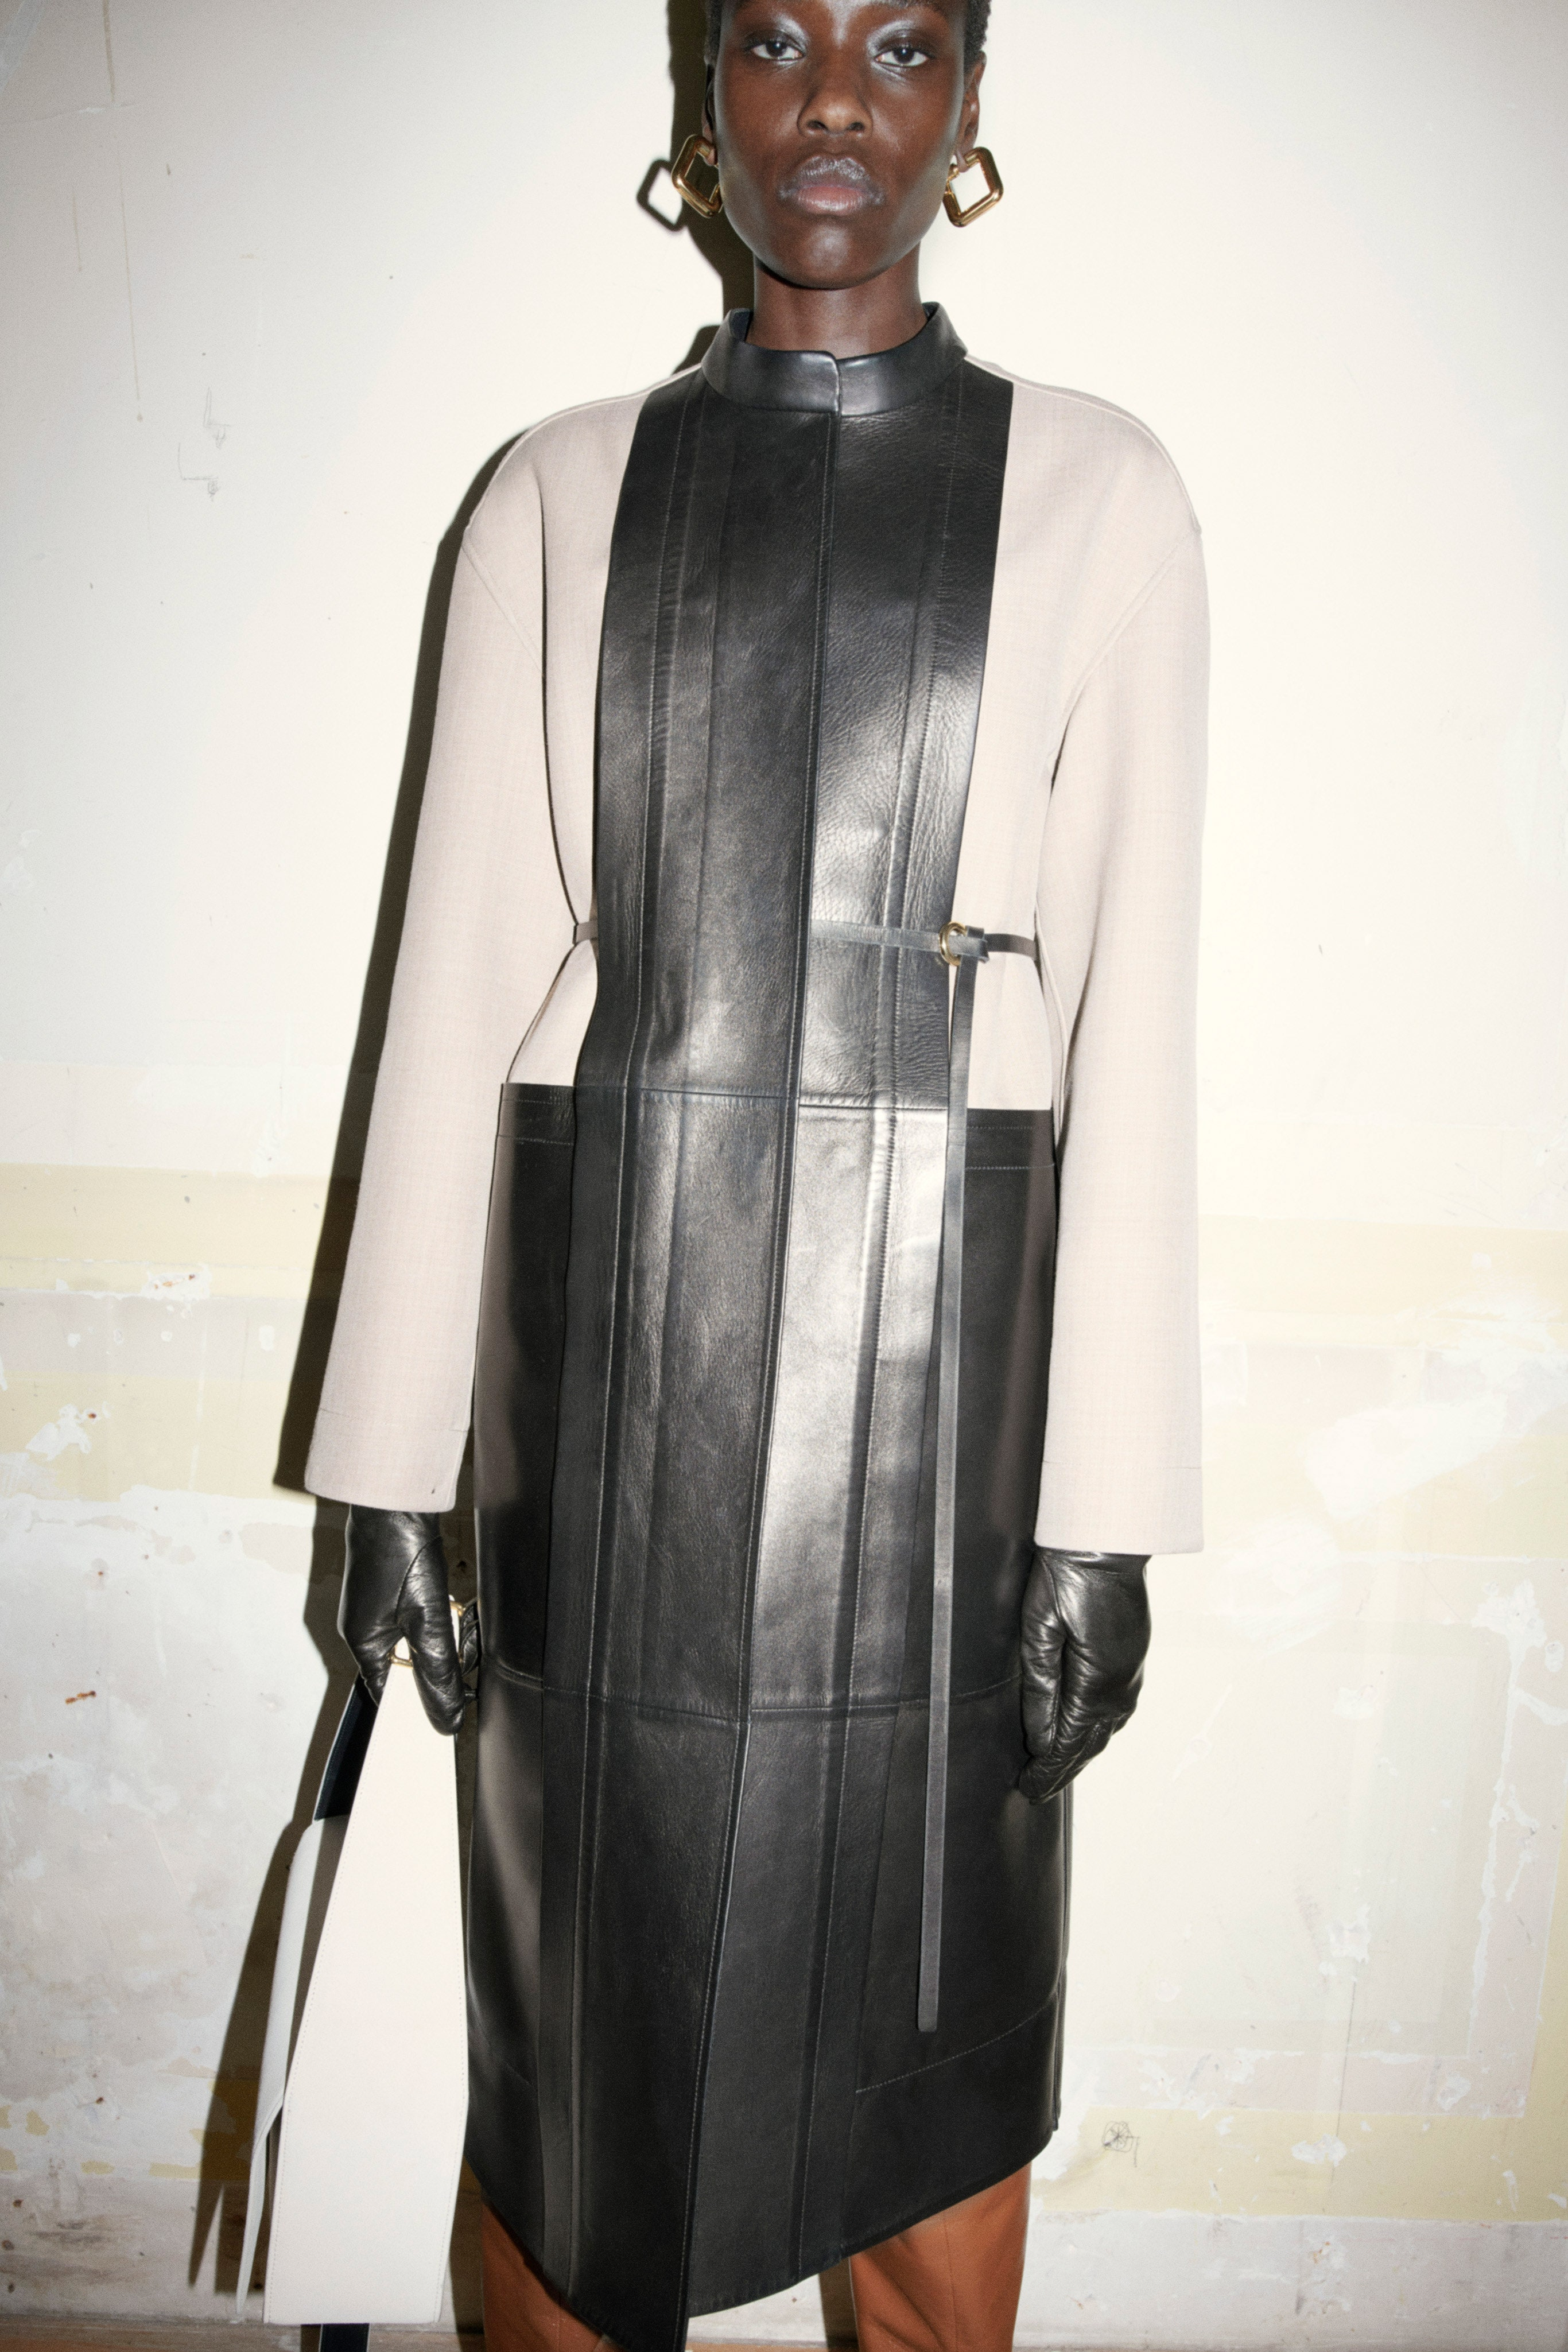 For walks in the fresh air: A seasonal collection of Jil Sander arrived at Asthik (photo 39)